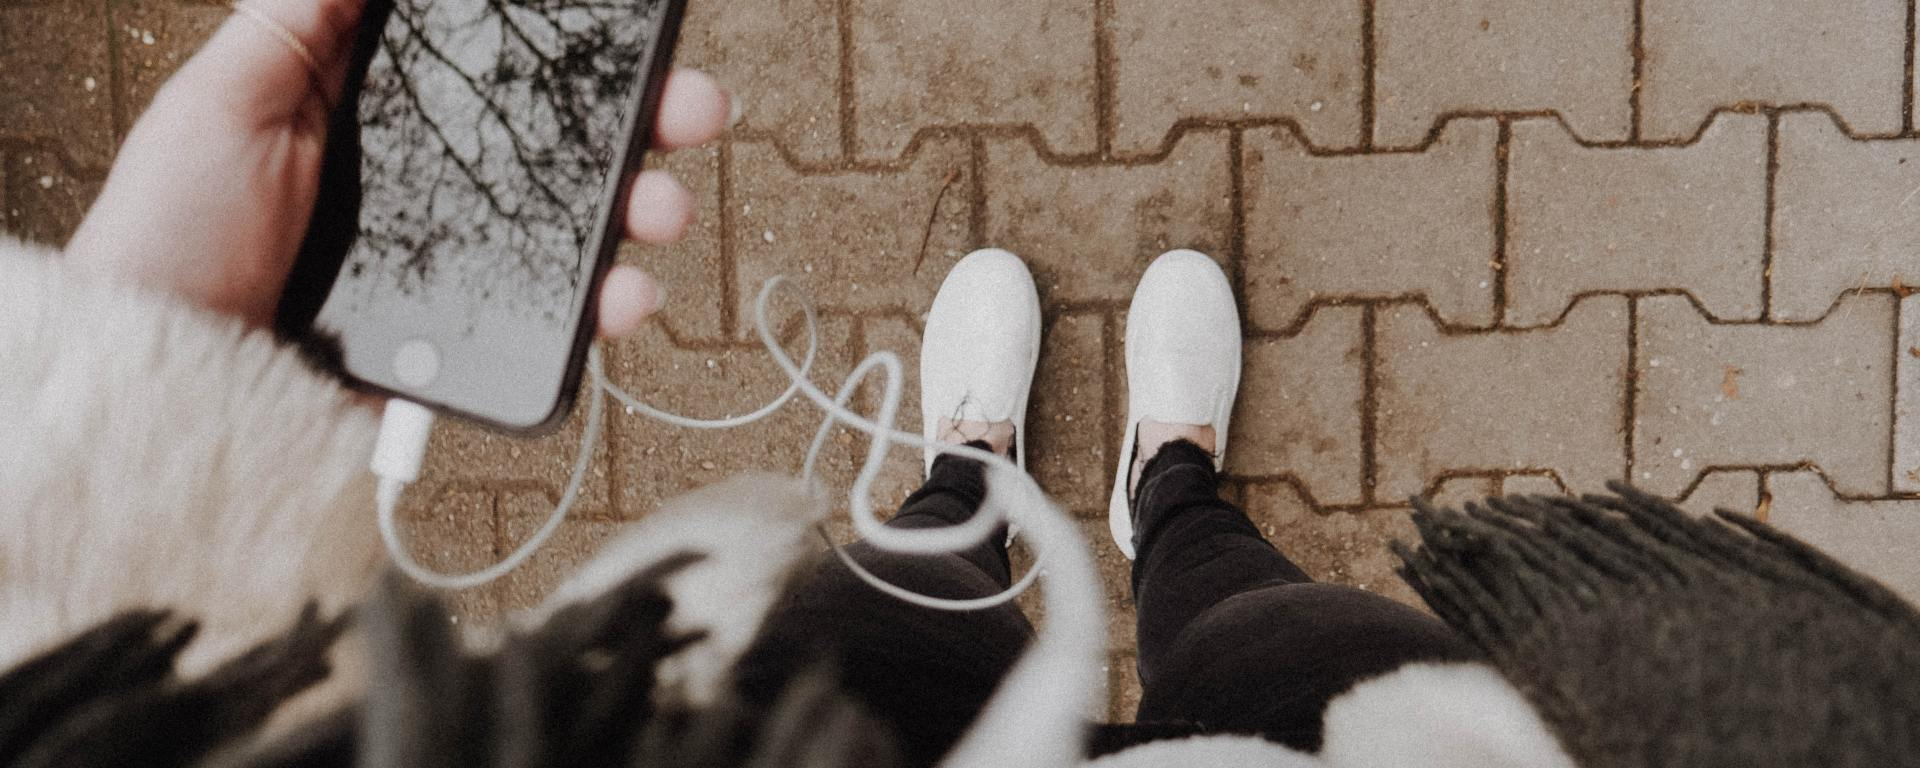 image facing down to someone's white shoes while they hold an iphone with headphones